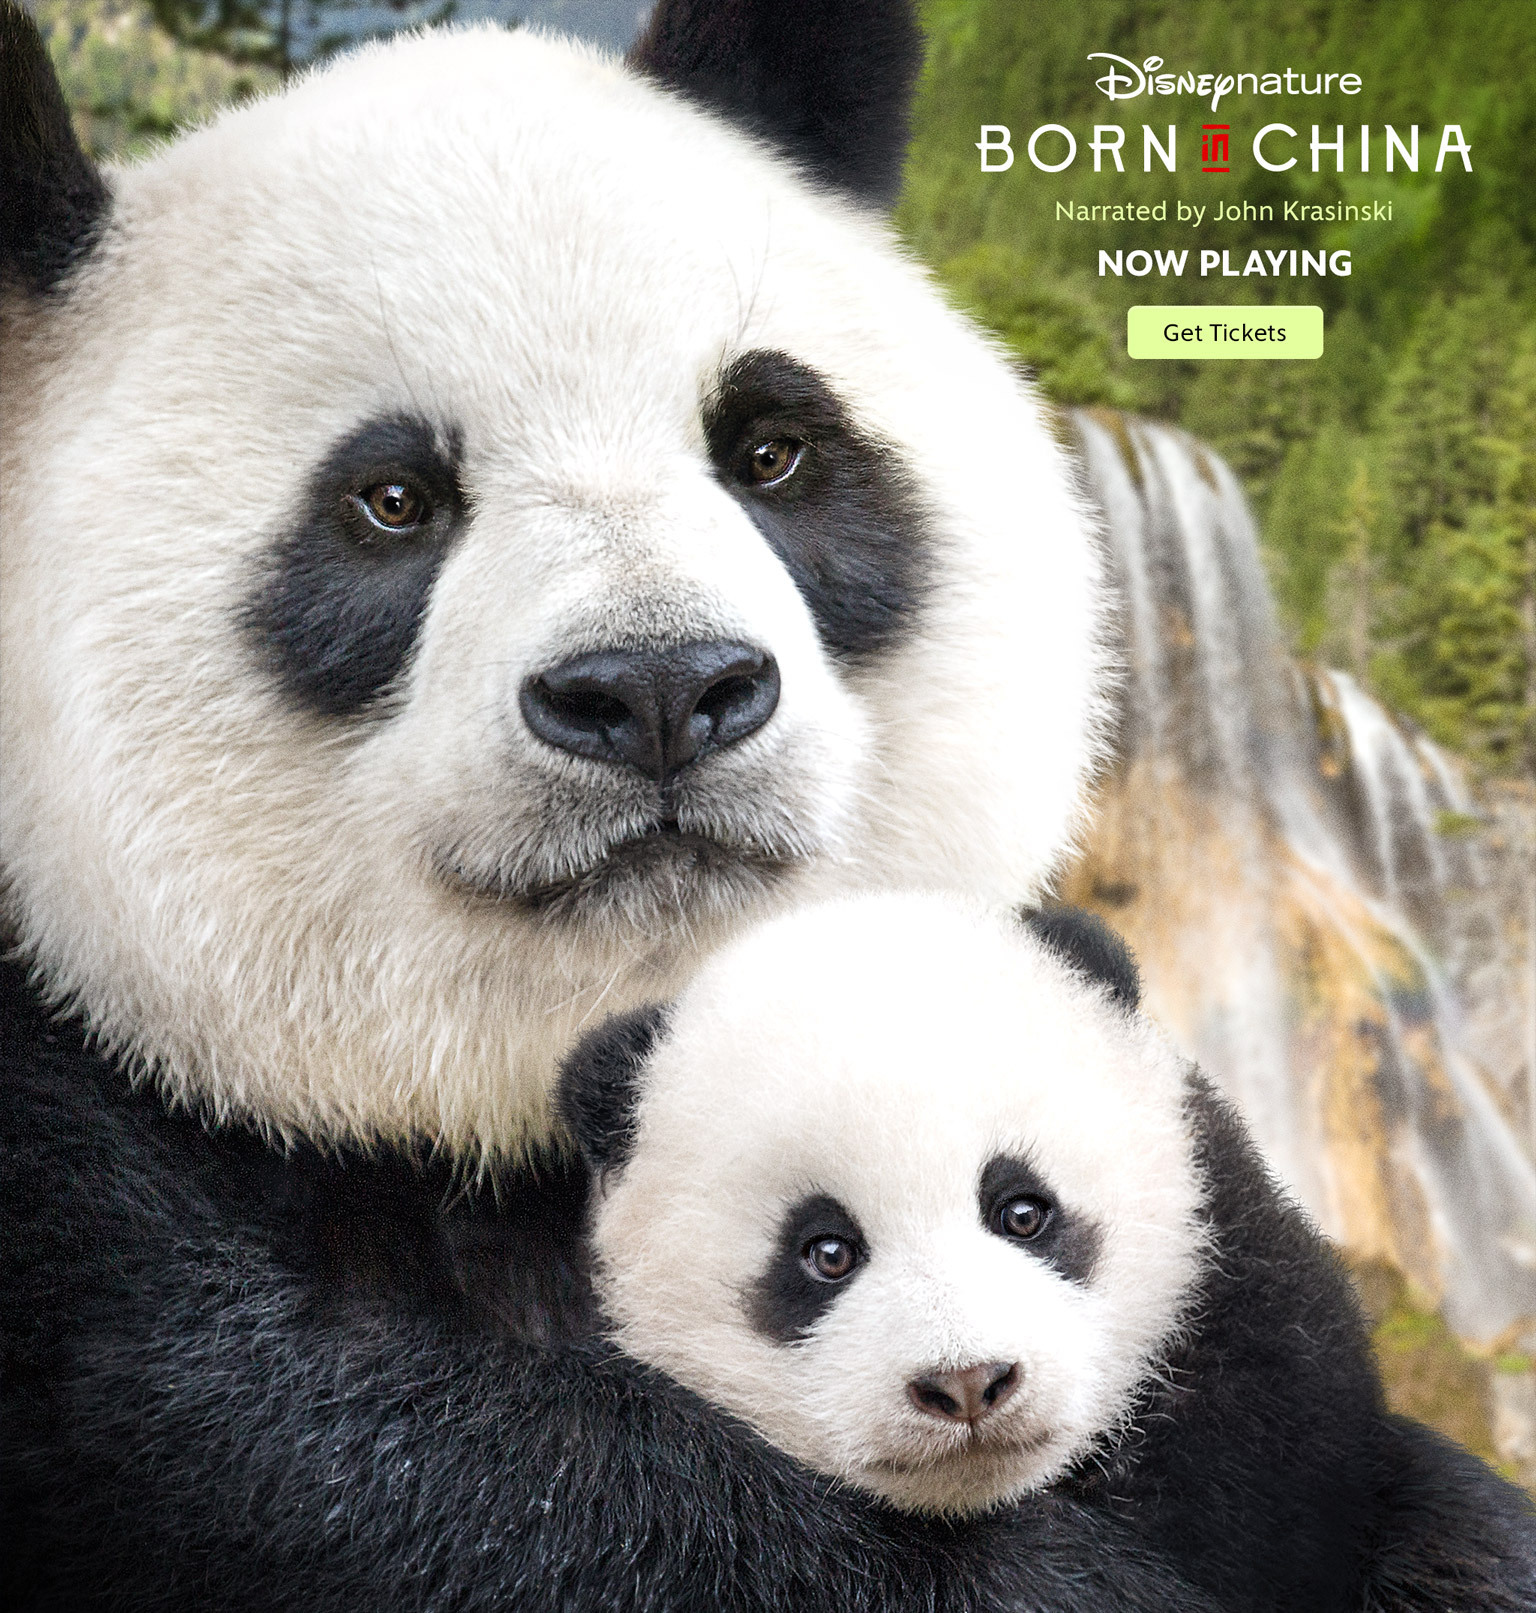 """""""Born in China"""" Moviegoers Help Protect Wild Pandas and Snow Leopards"""